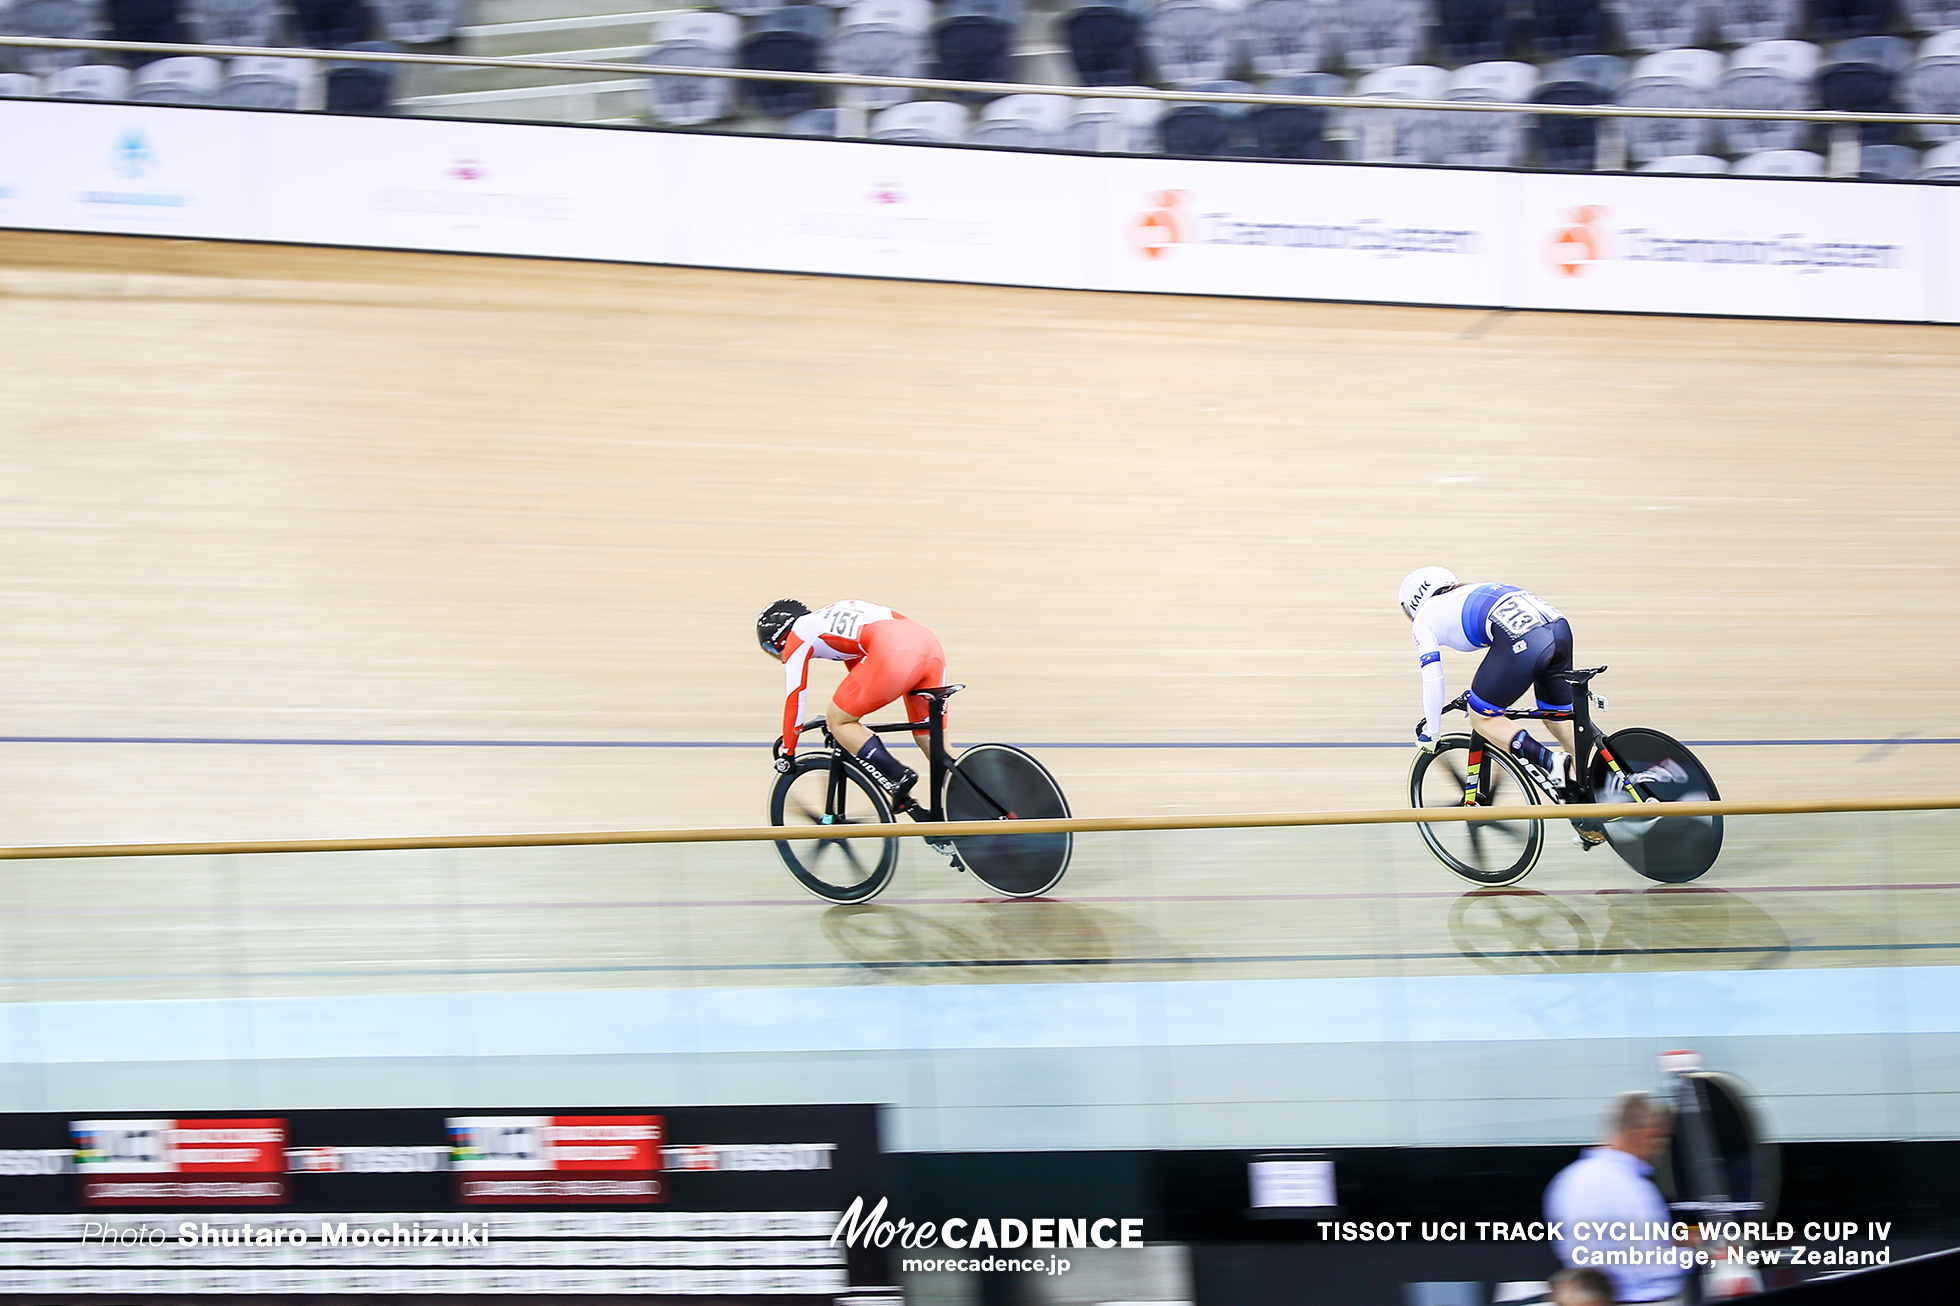 1/8 Finals / Women's Sprint / TISSOT UCI TRACK CYCLING WORLD CUP IV, Cambridge, New Zealand